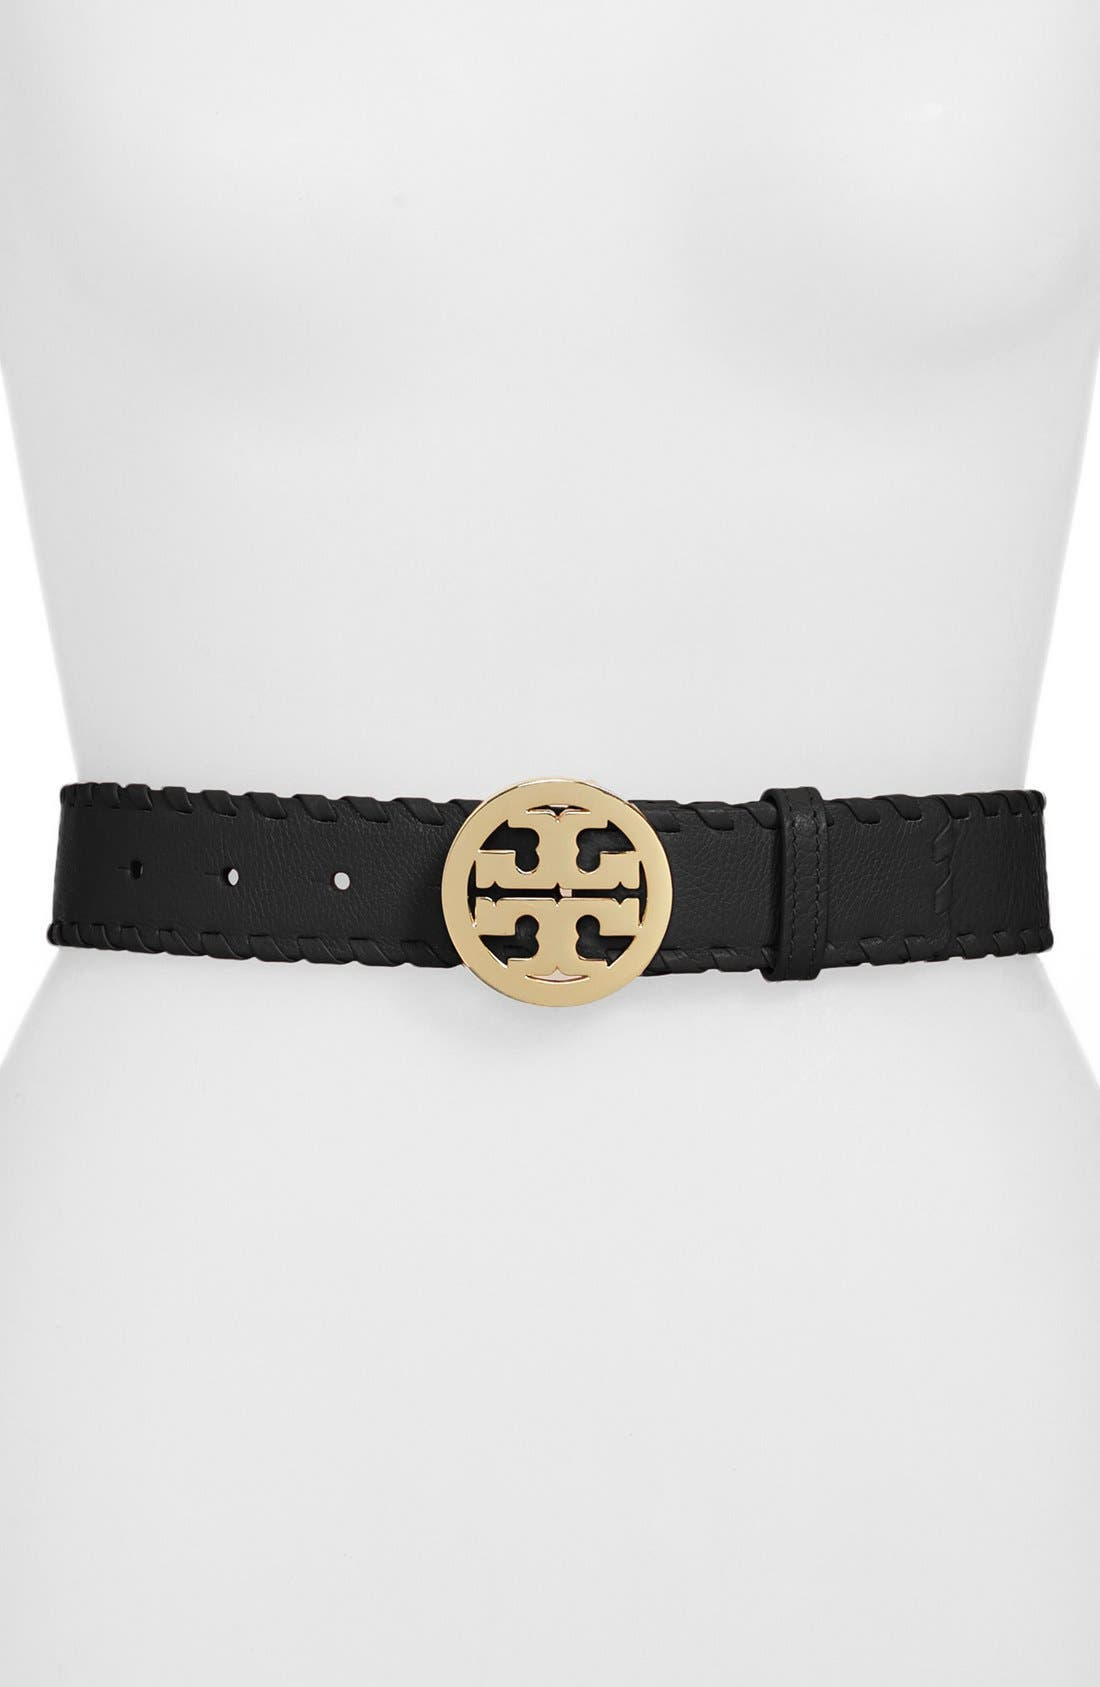 TORY BURCH 'Marion' Whipstitch Logo Belt, Main, color, 001